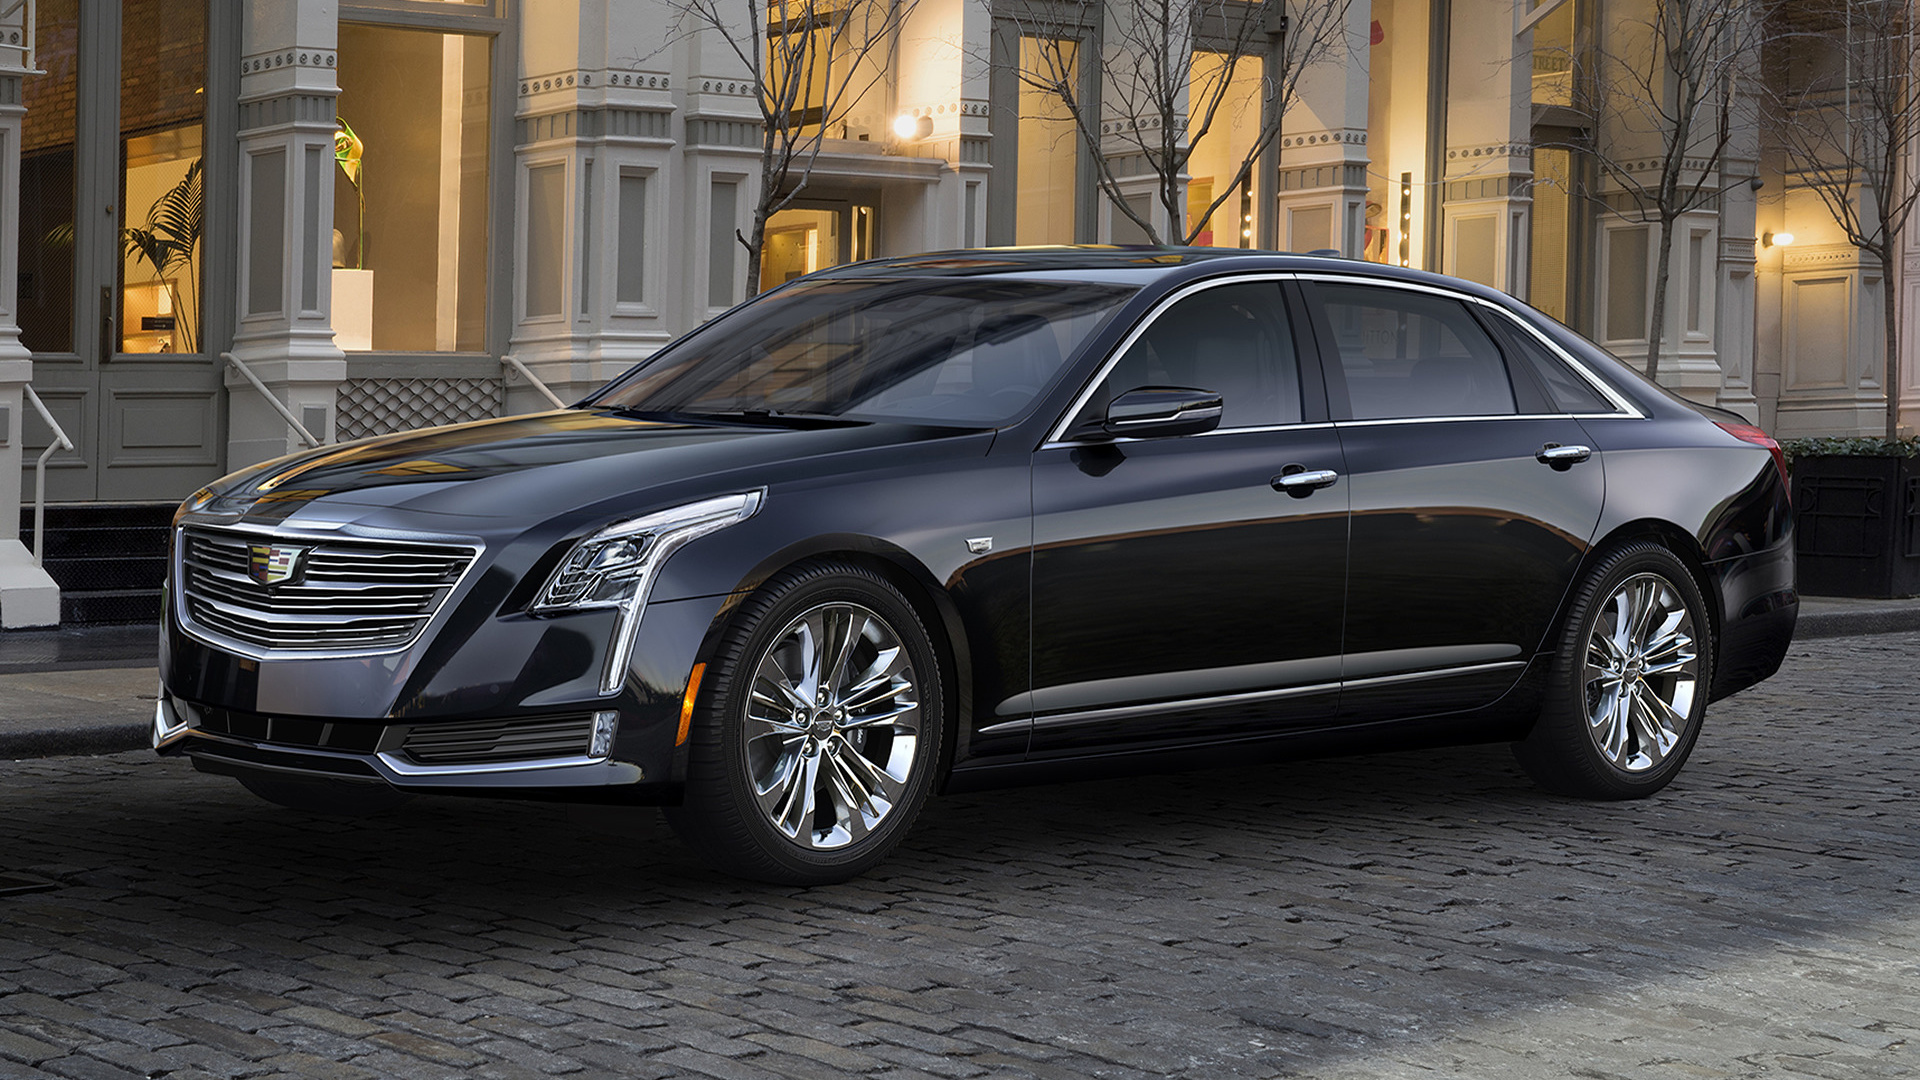 Cadillac CT6 (2016) Wallpapers and HD Images - Car Pixel